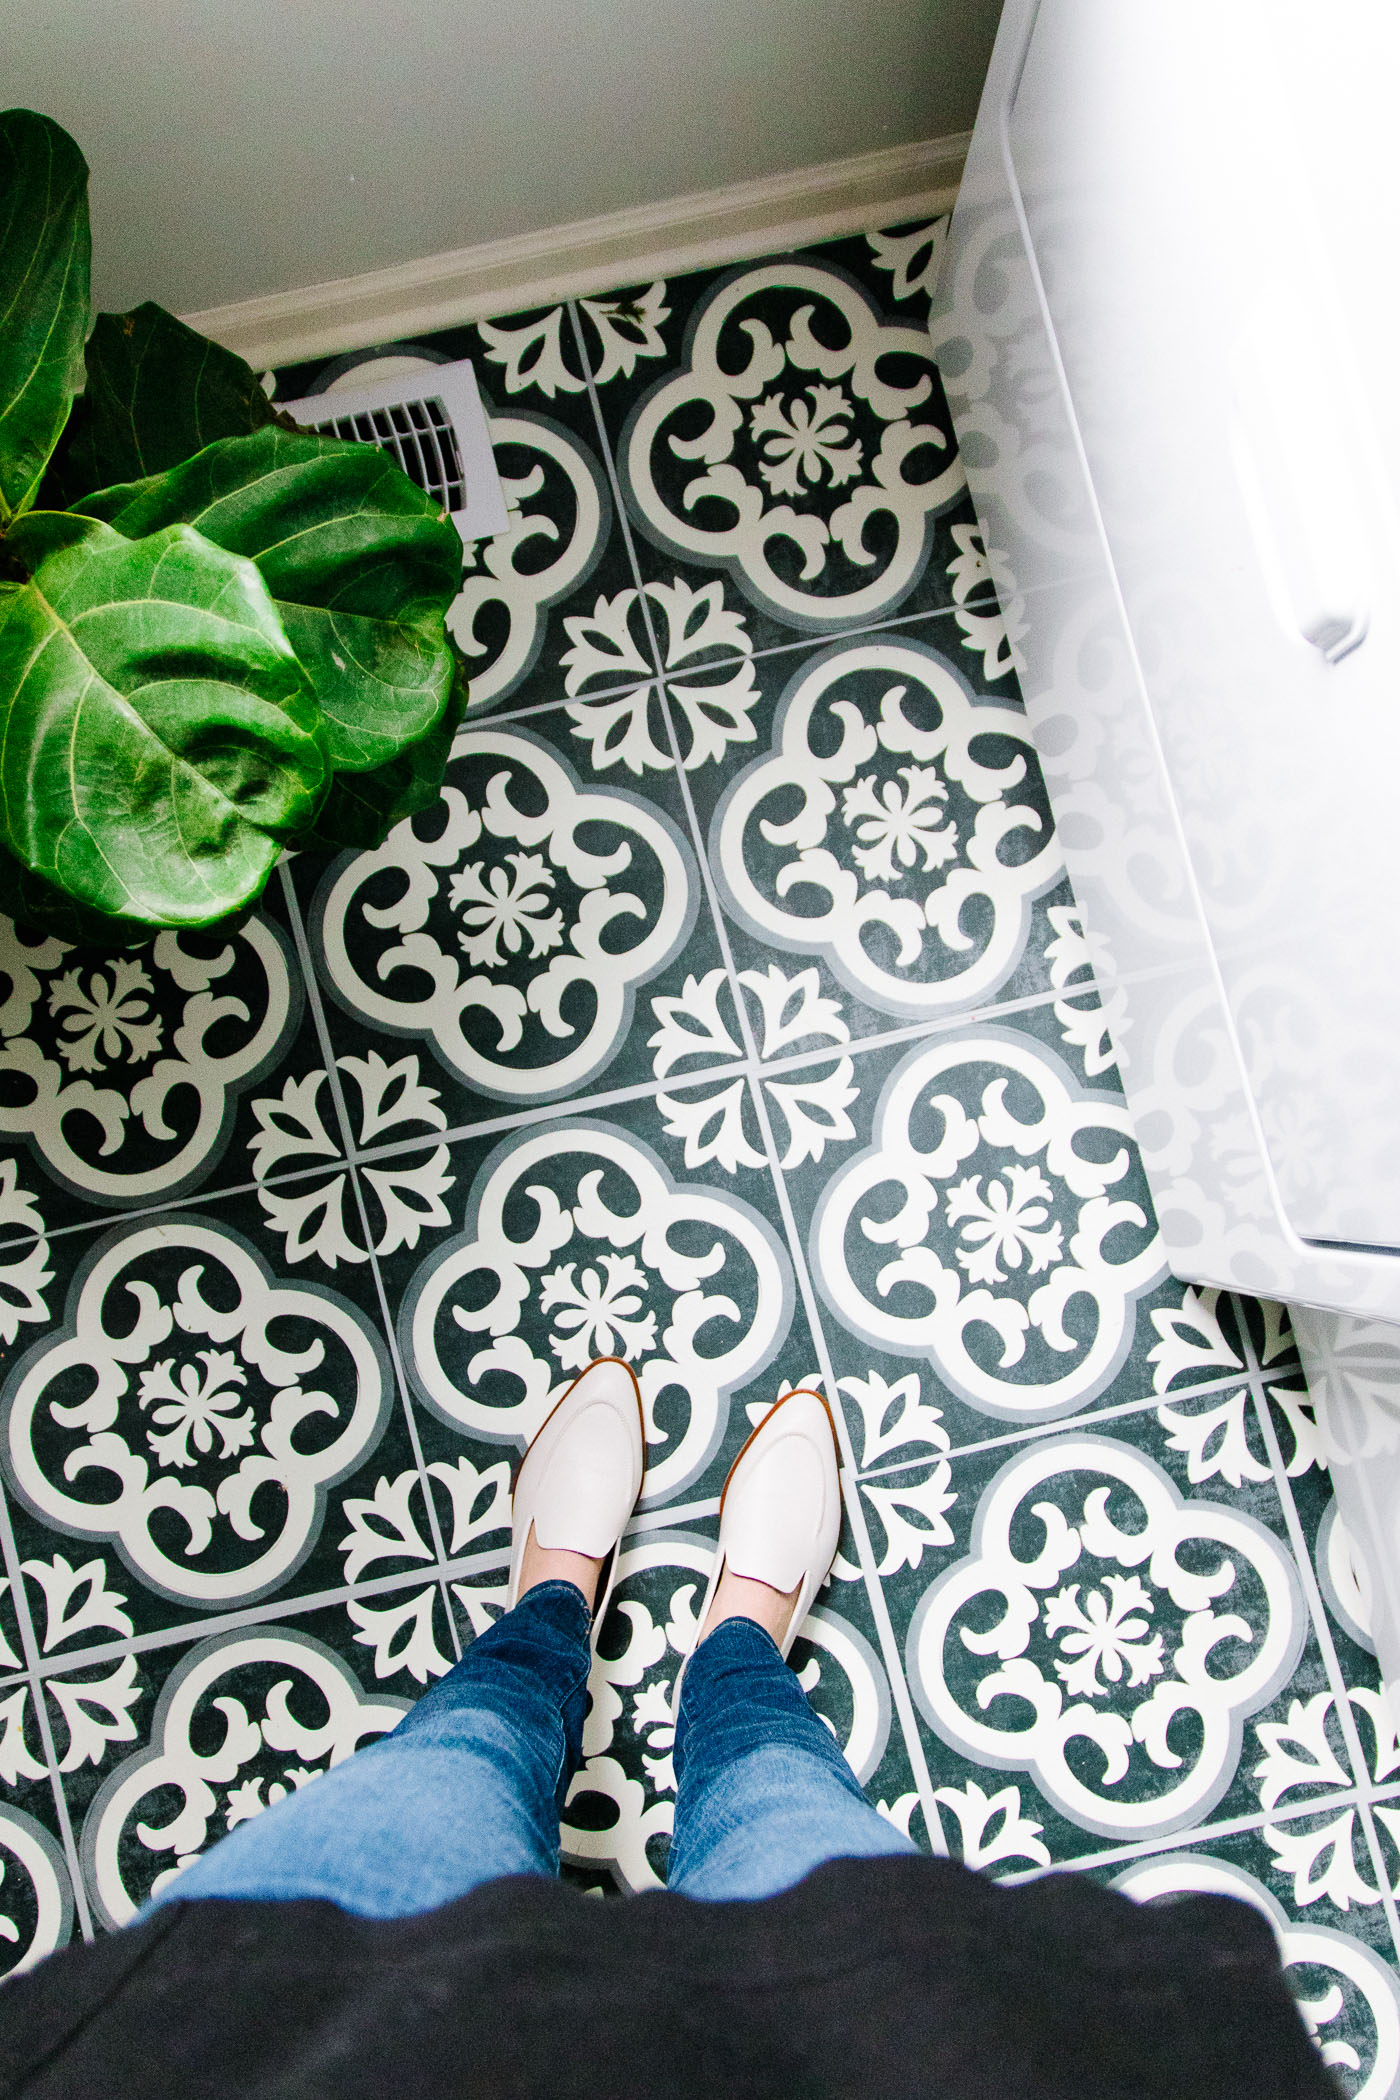 our new laundry room flooring